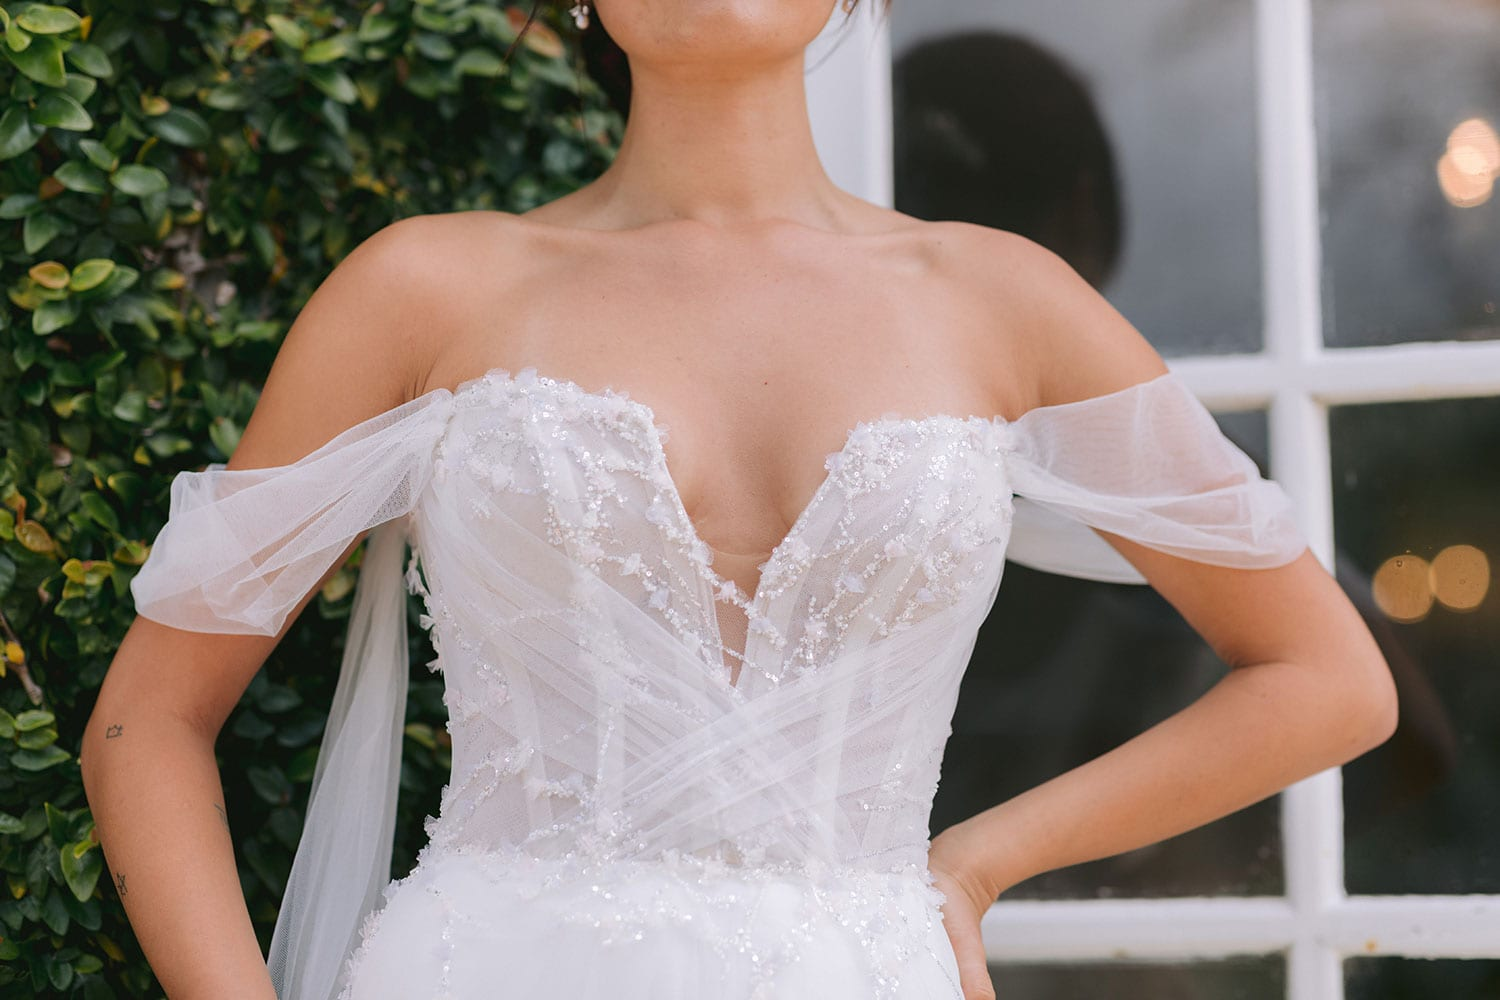 Evie Wedding gown from Vinka Design - Dreamy semi-sheer wedding dress with lace embroidery and beading. The bodice is structured, with hand-appliqued lace and draped with tulle to integrate modern elements with classic design. Model wearing gown close up of bodice lace.